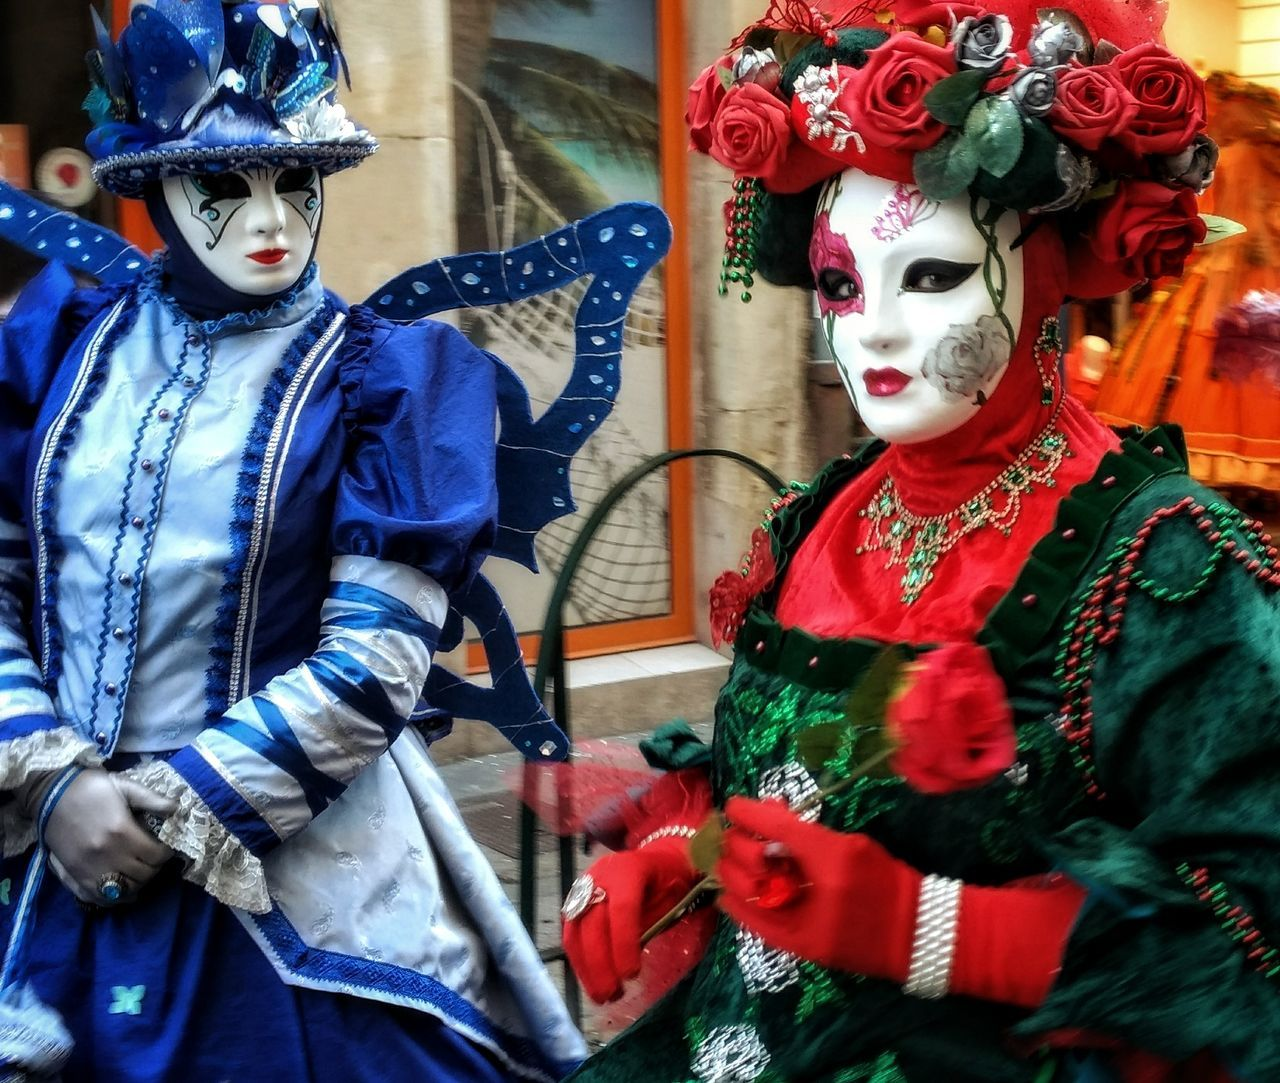 mask - disguise, venetian mask, costume, carnival - celebration event, real people, carnival, mask, waist up, front view, two people, disguise, celebration, outdoors, arts culture and entertainment, day, lifestyles